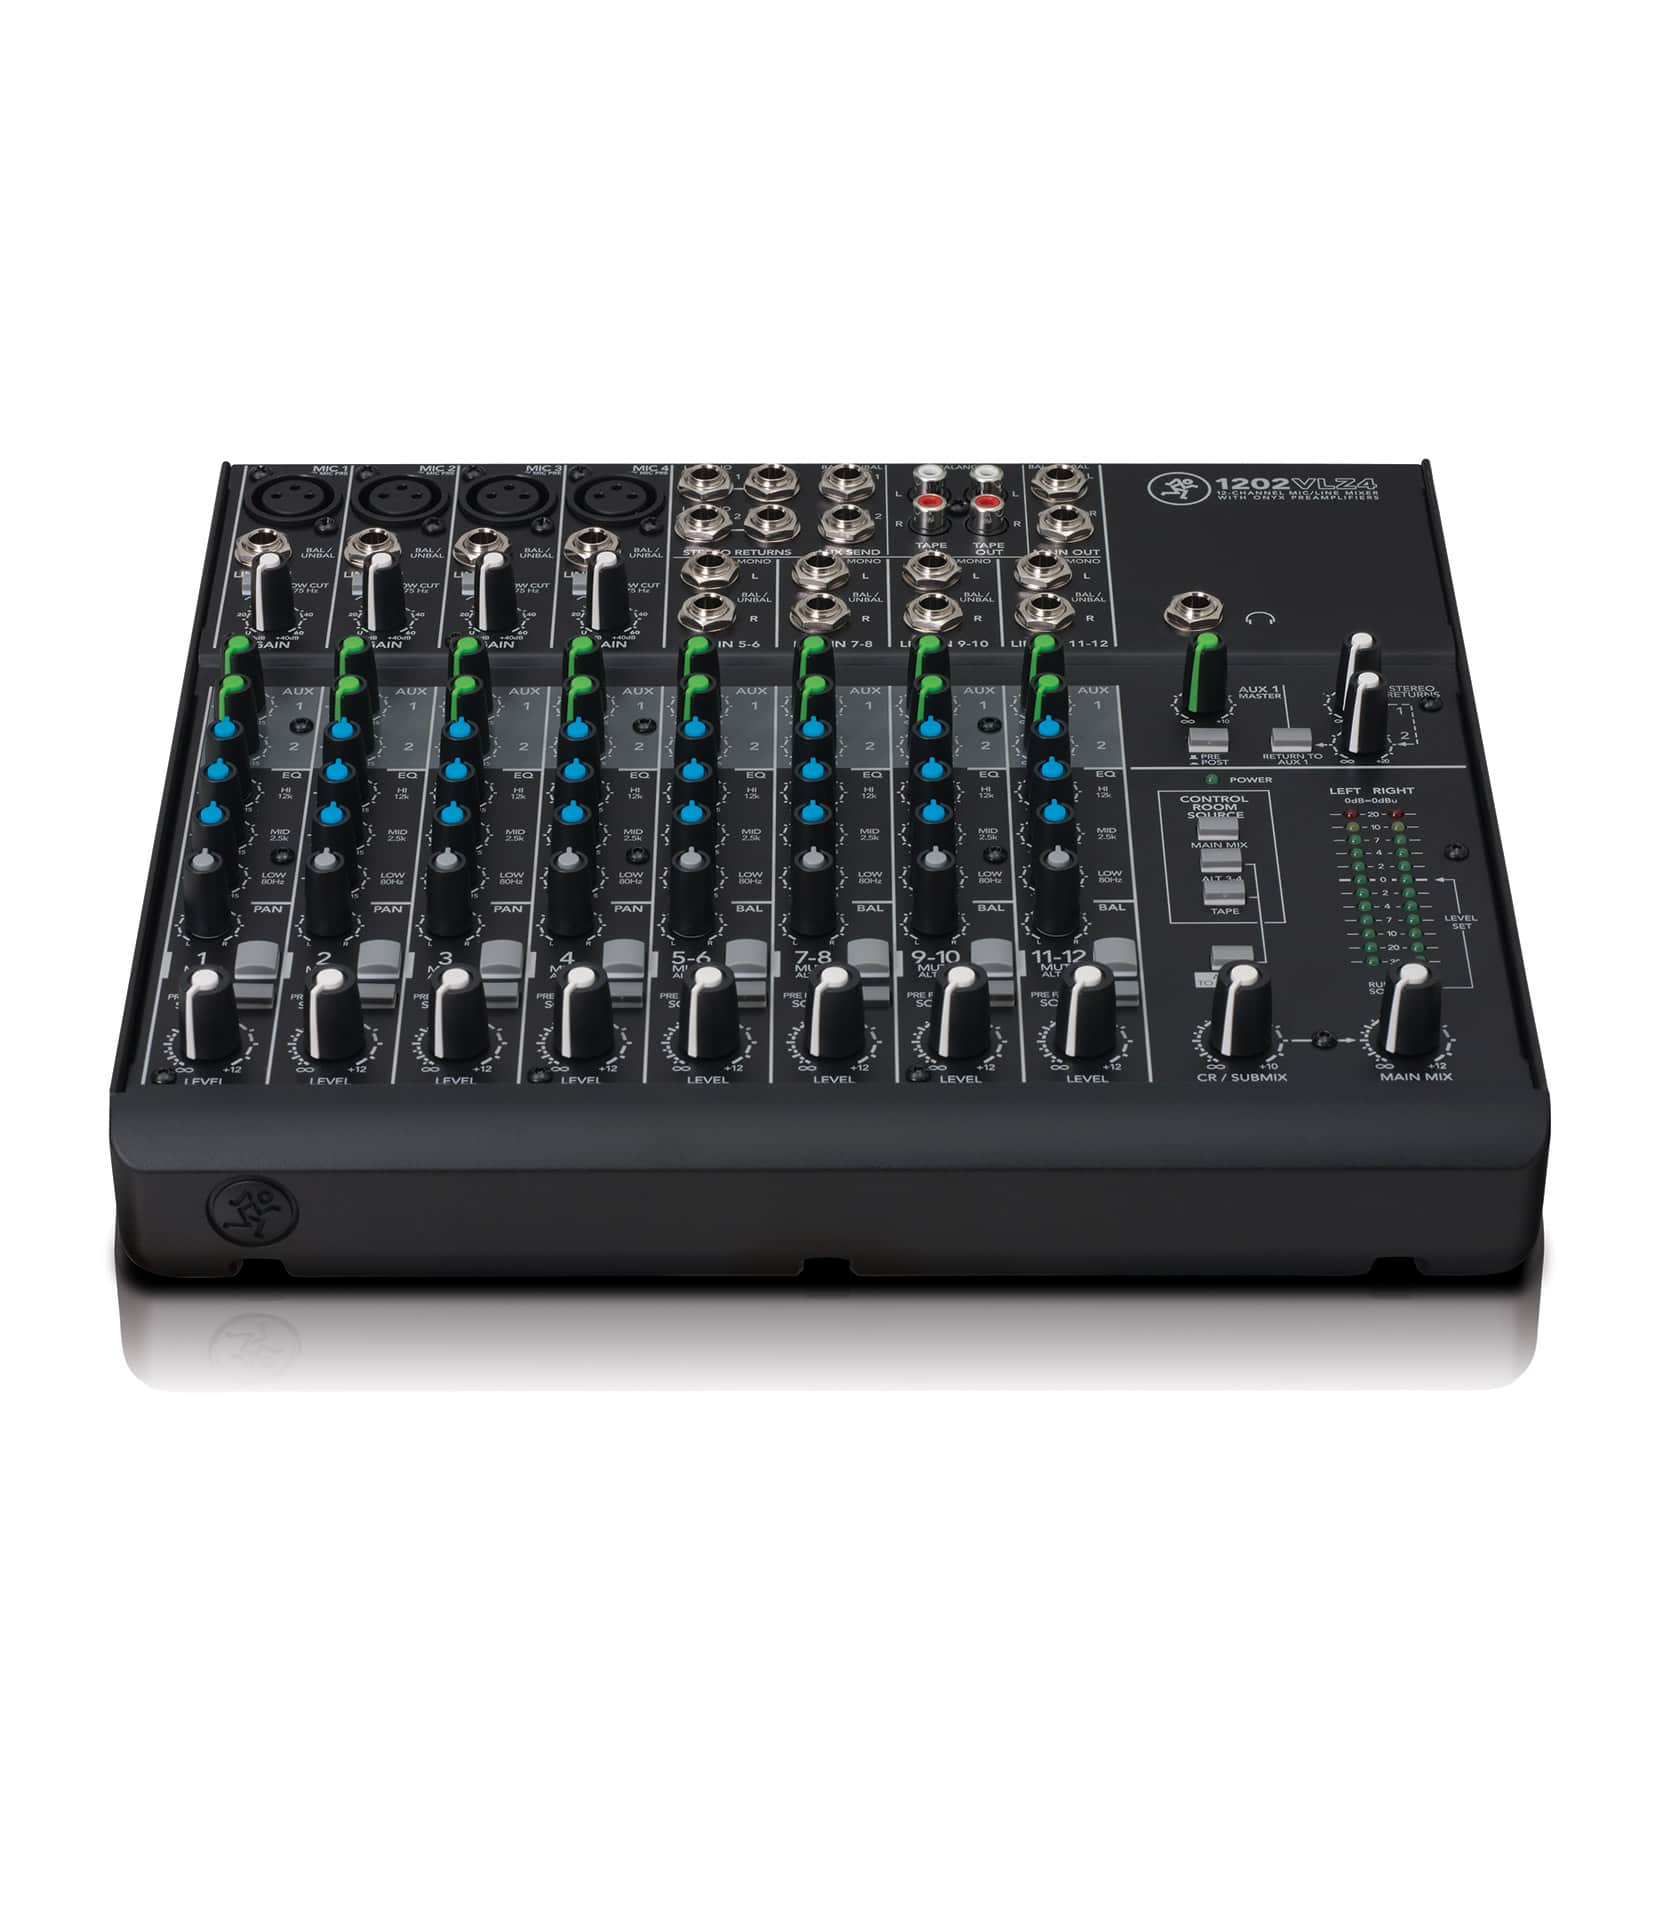 mackie - 1202VLZ4 12 channel Compact Mixer - Melody House